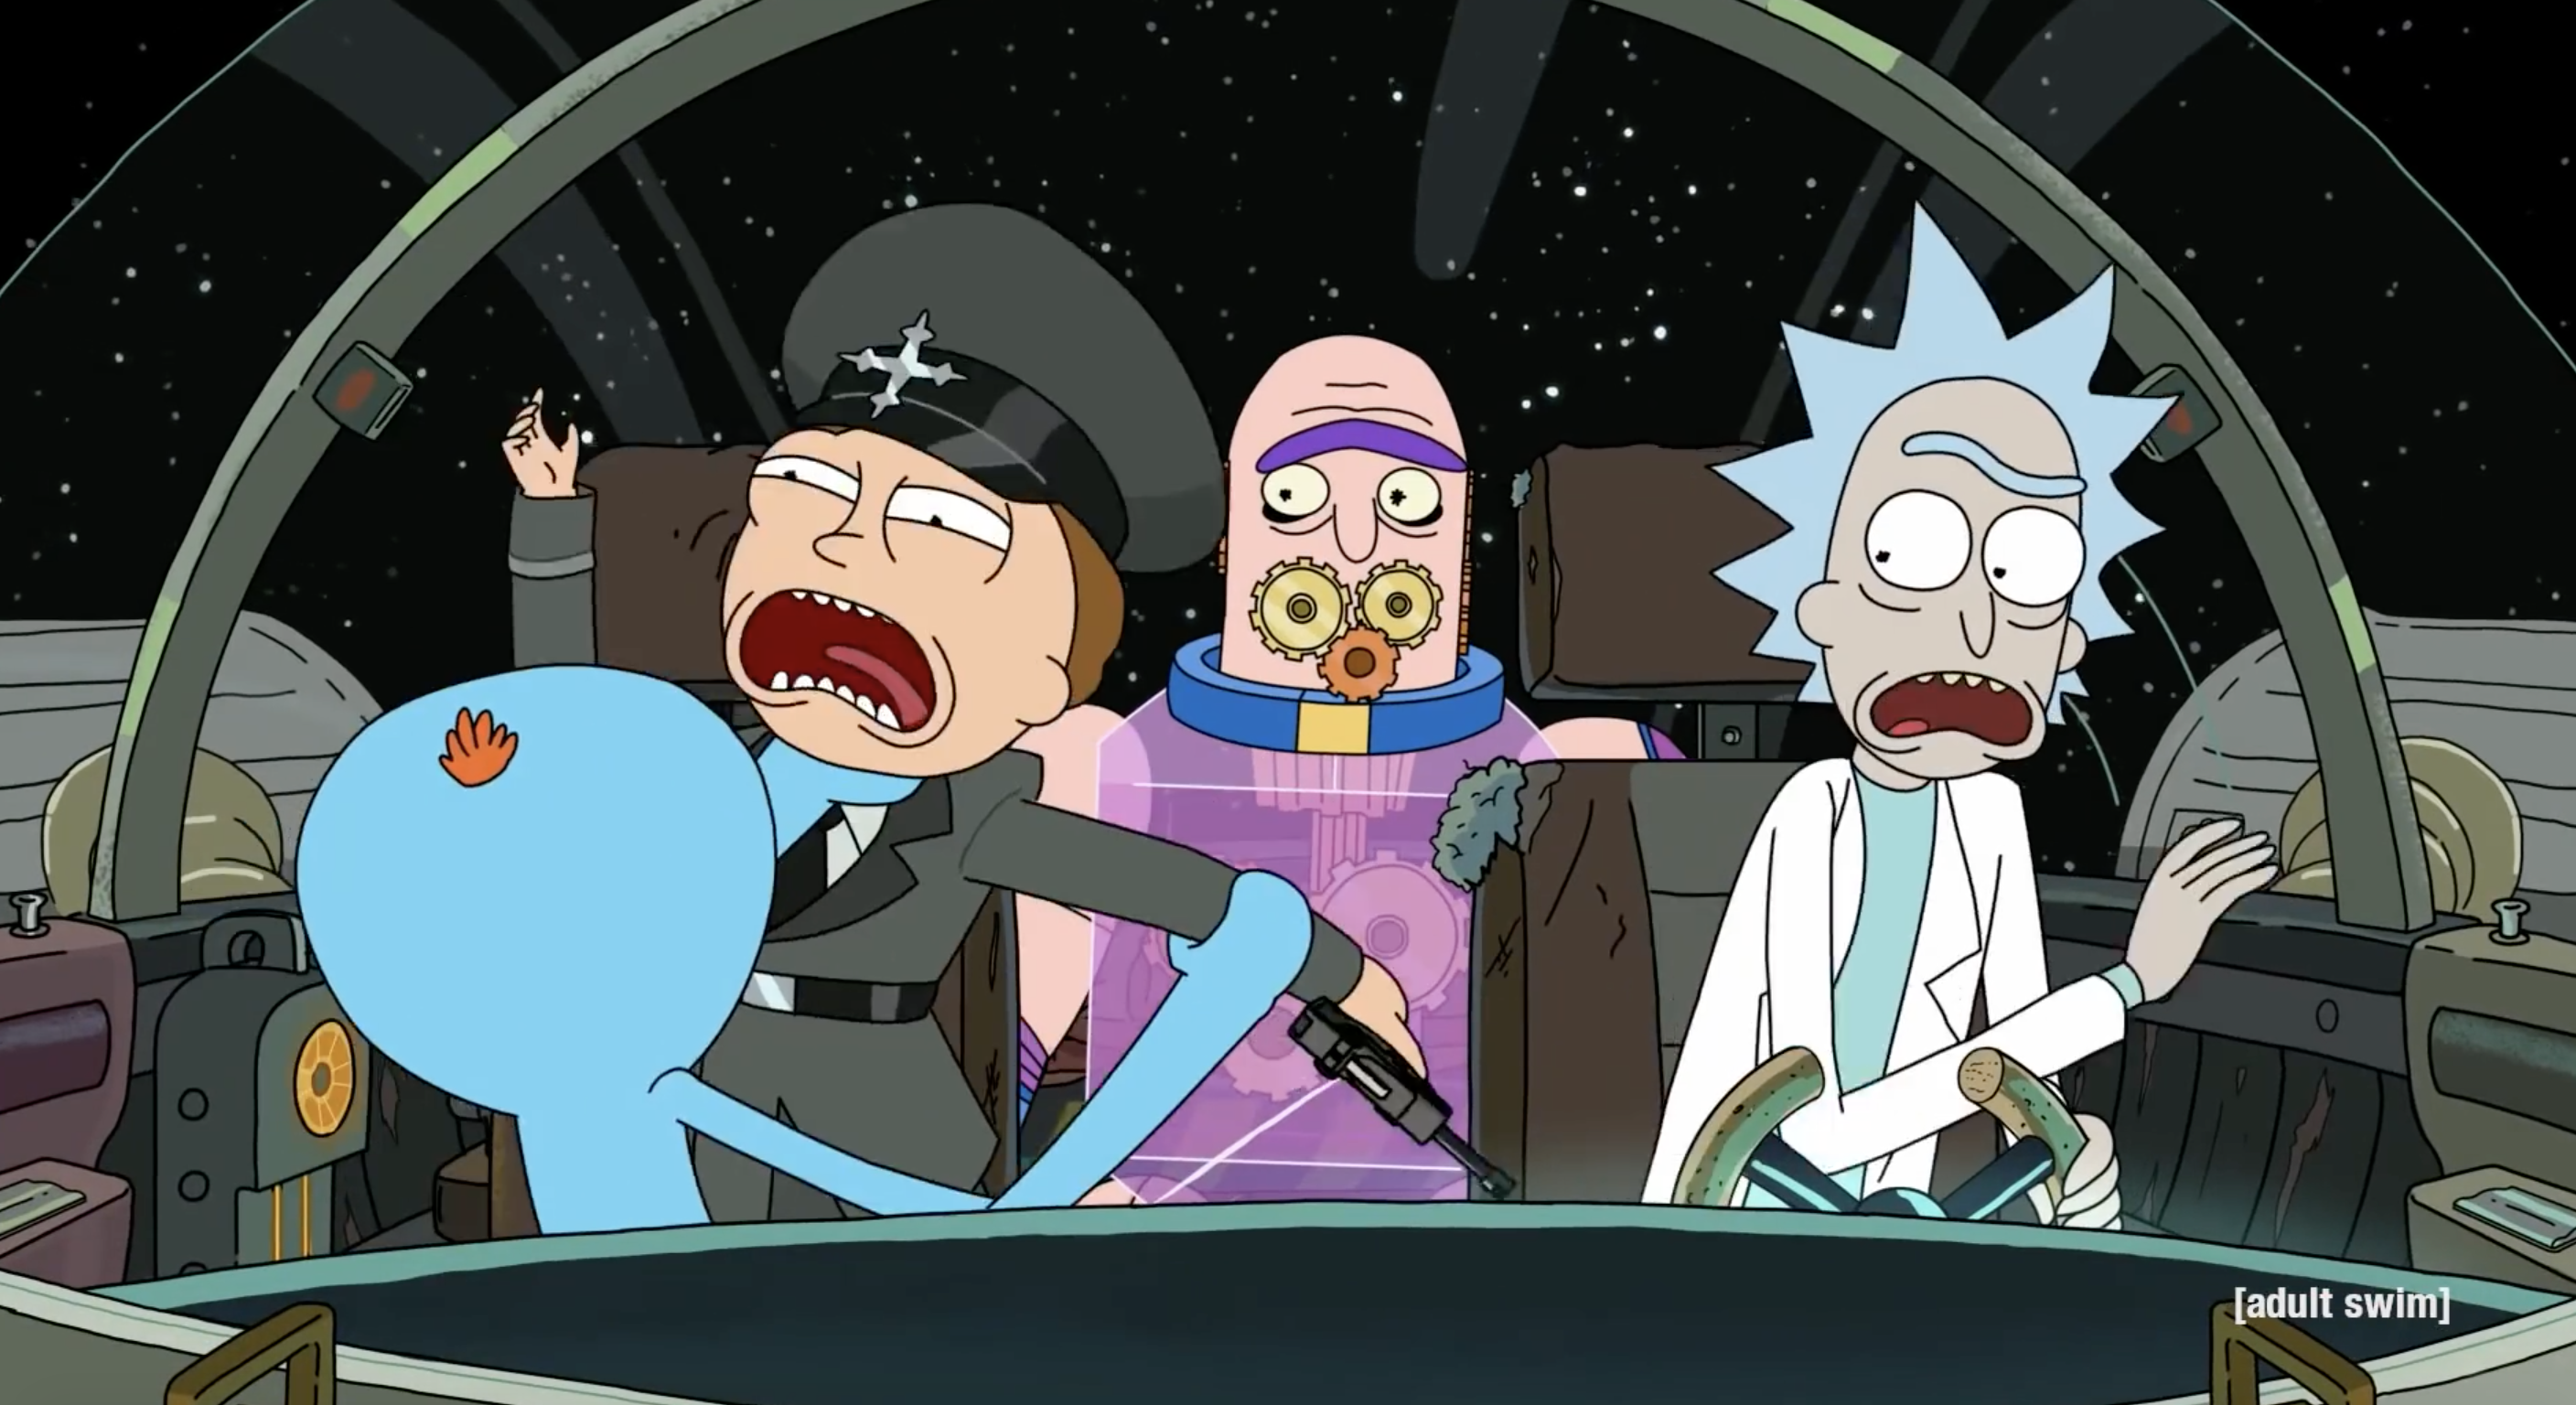 rick and morty in a spaceship. rick is driving, morty is wearing a uniform. some sort of clockwork alien sits in the back. Mr. Meeseeks attacks morty, who screams. rick looks mildly shocked